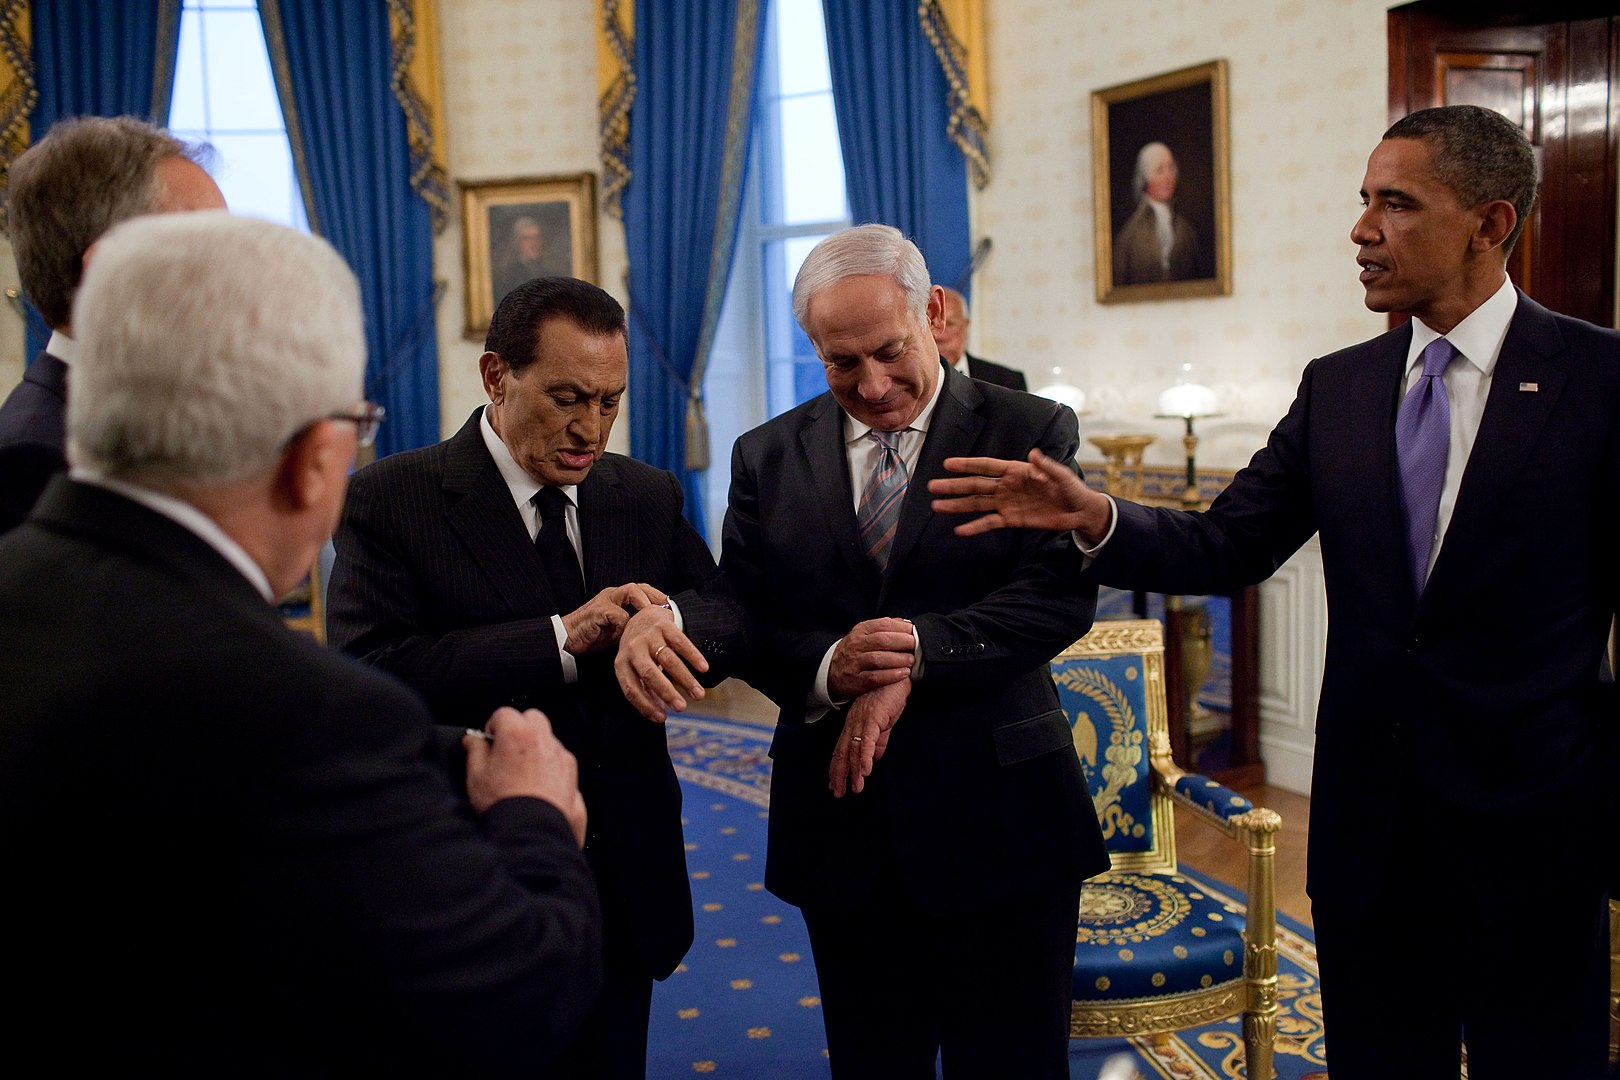 Mubarak, Netanyahu and President Obama at the White House in 2010 during Middle East negotiations. Photo: The White House